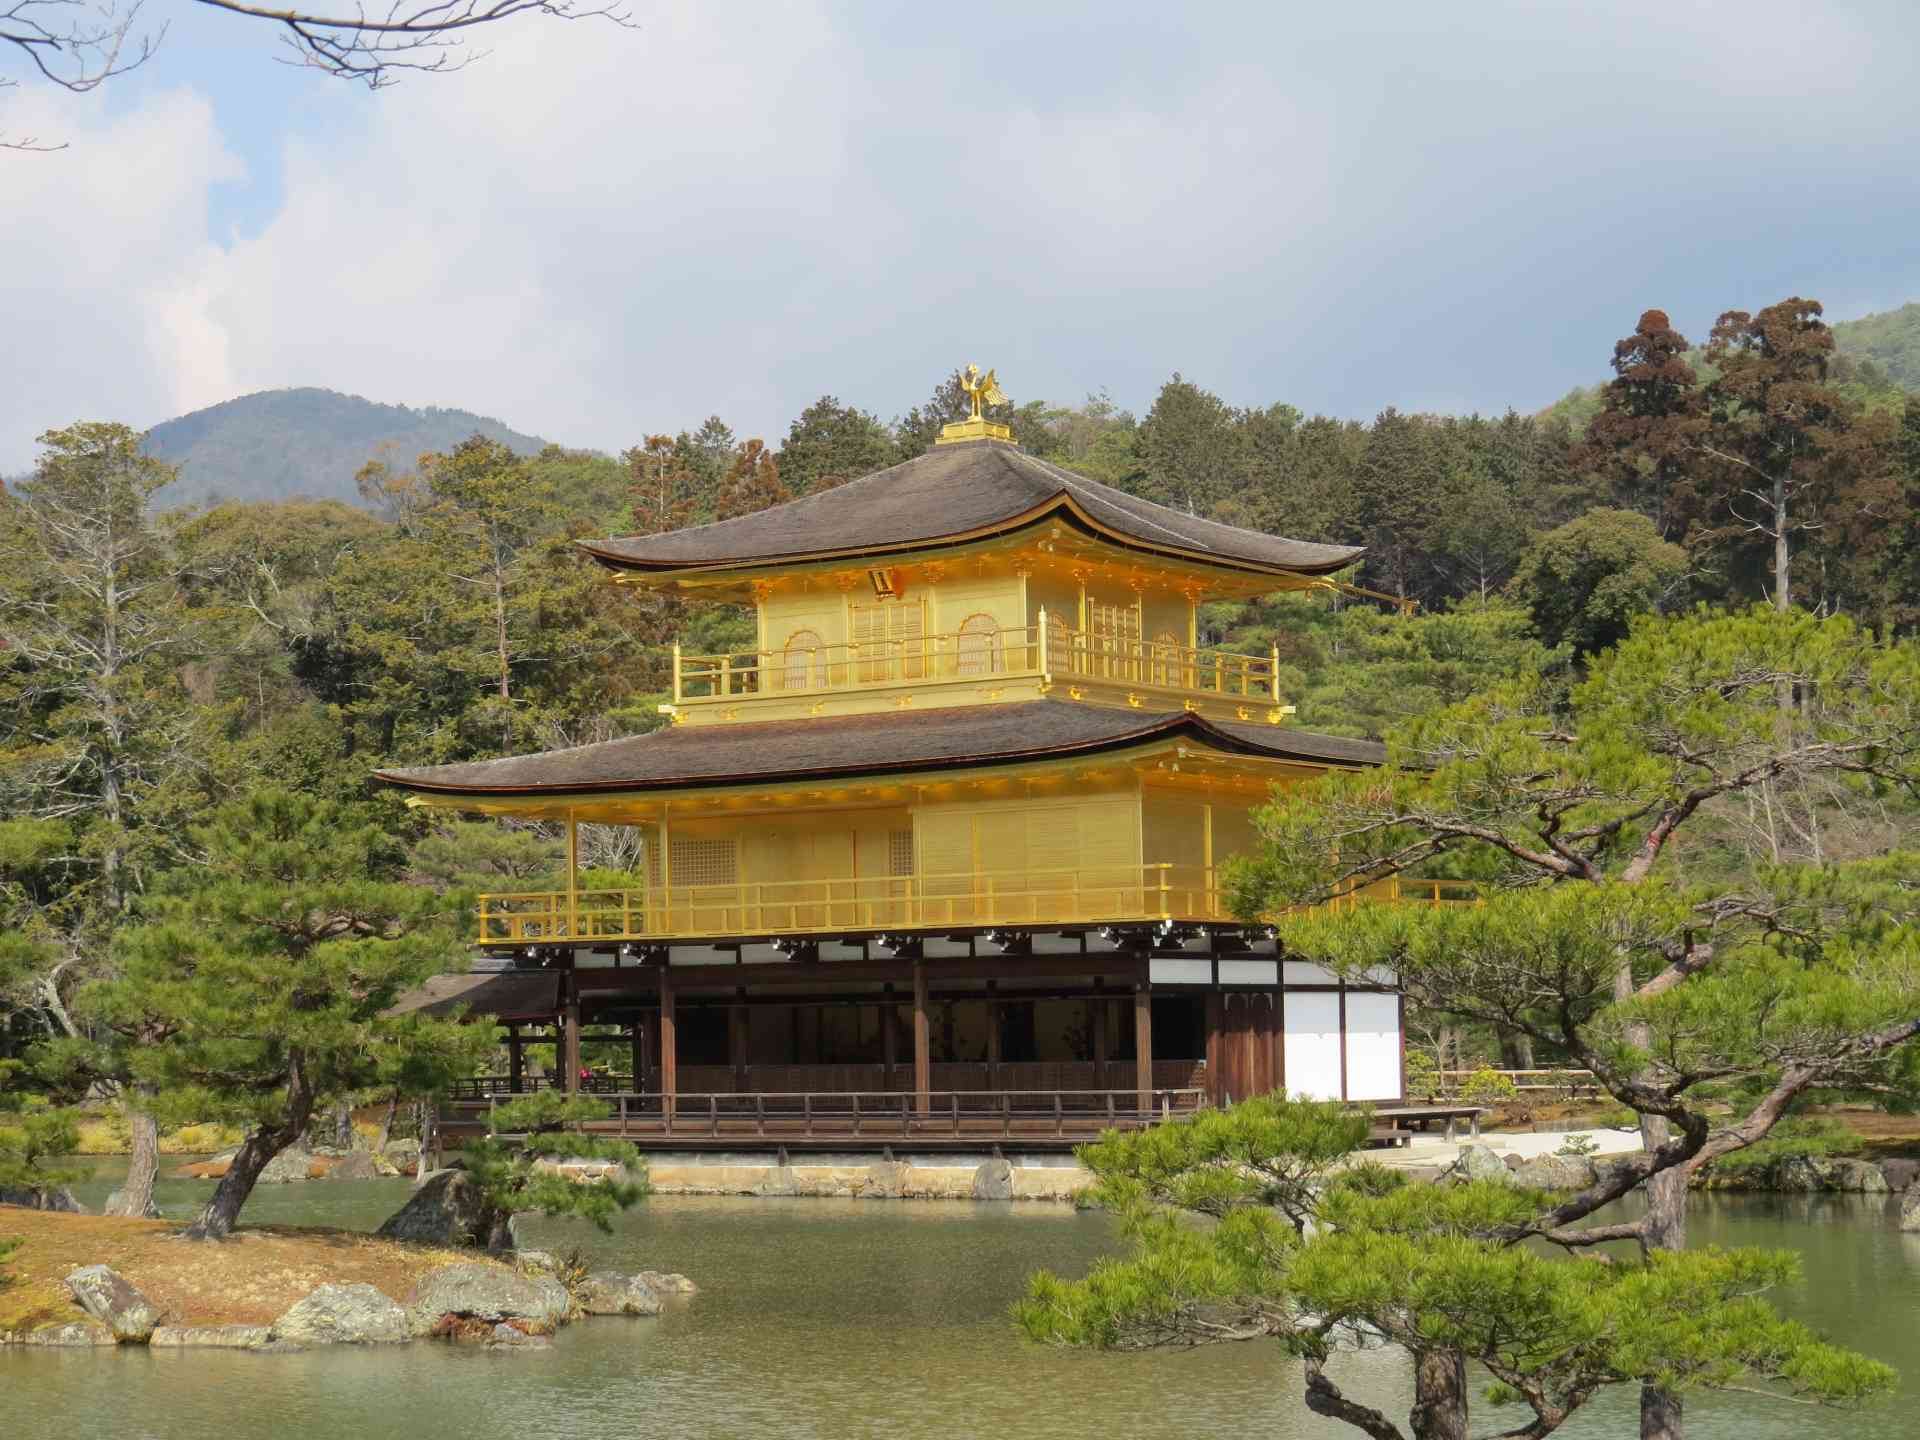 Golden Pavilion, Kyoto, Japan by Adam Dickson